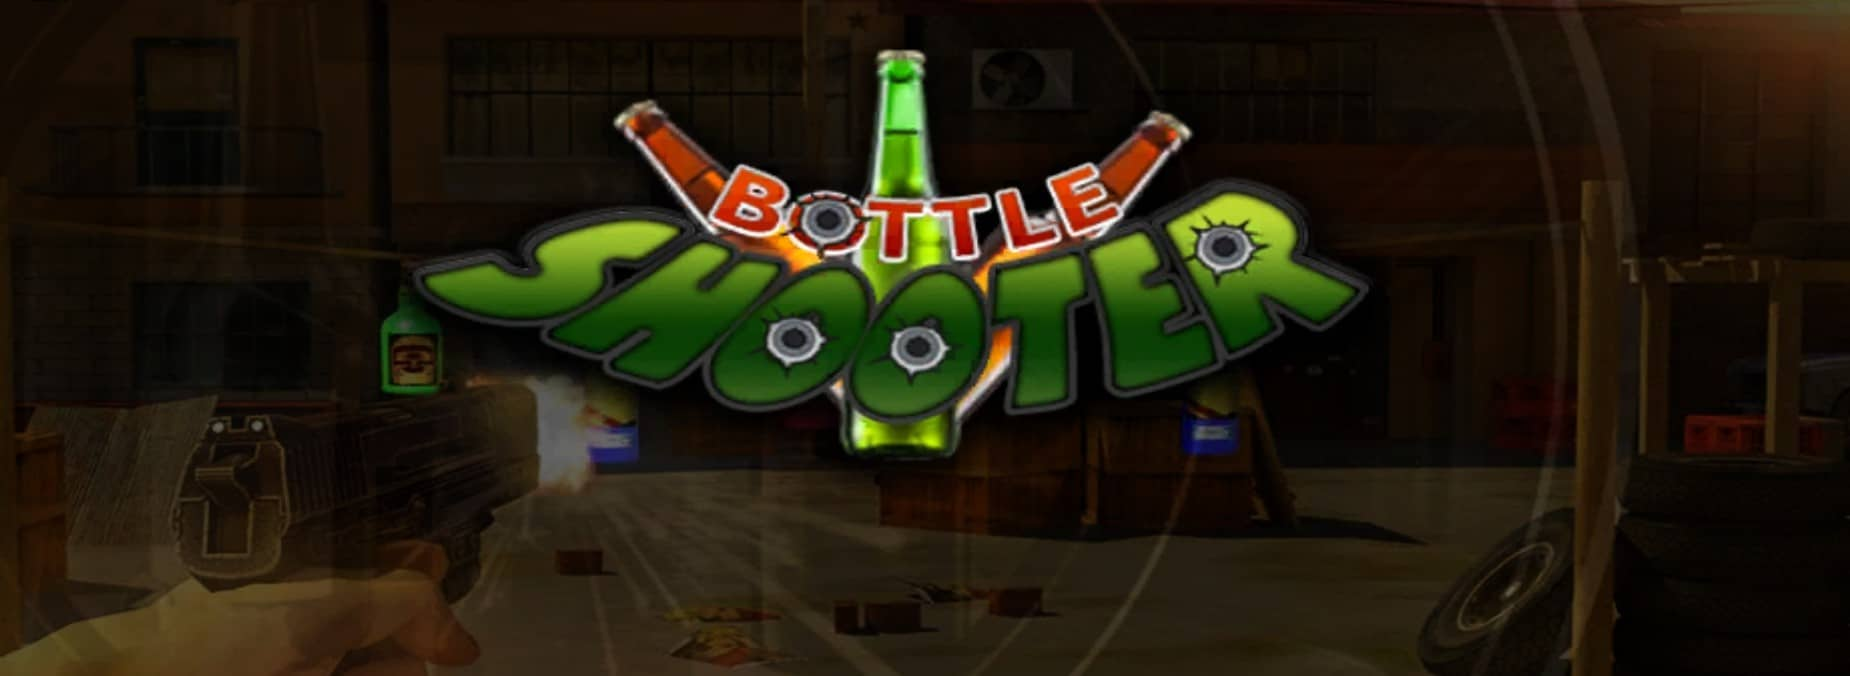 Download Real Bottle Shooter Game APK – for Android 18